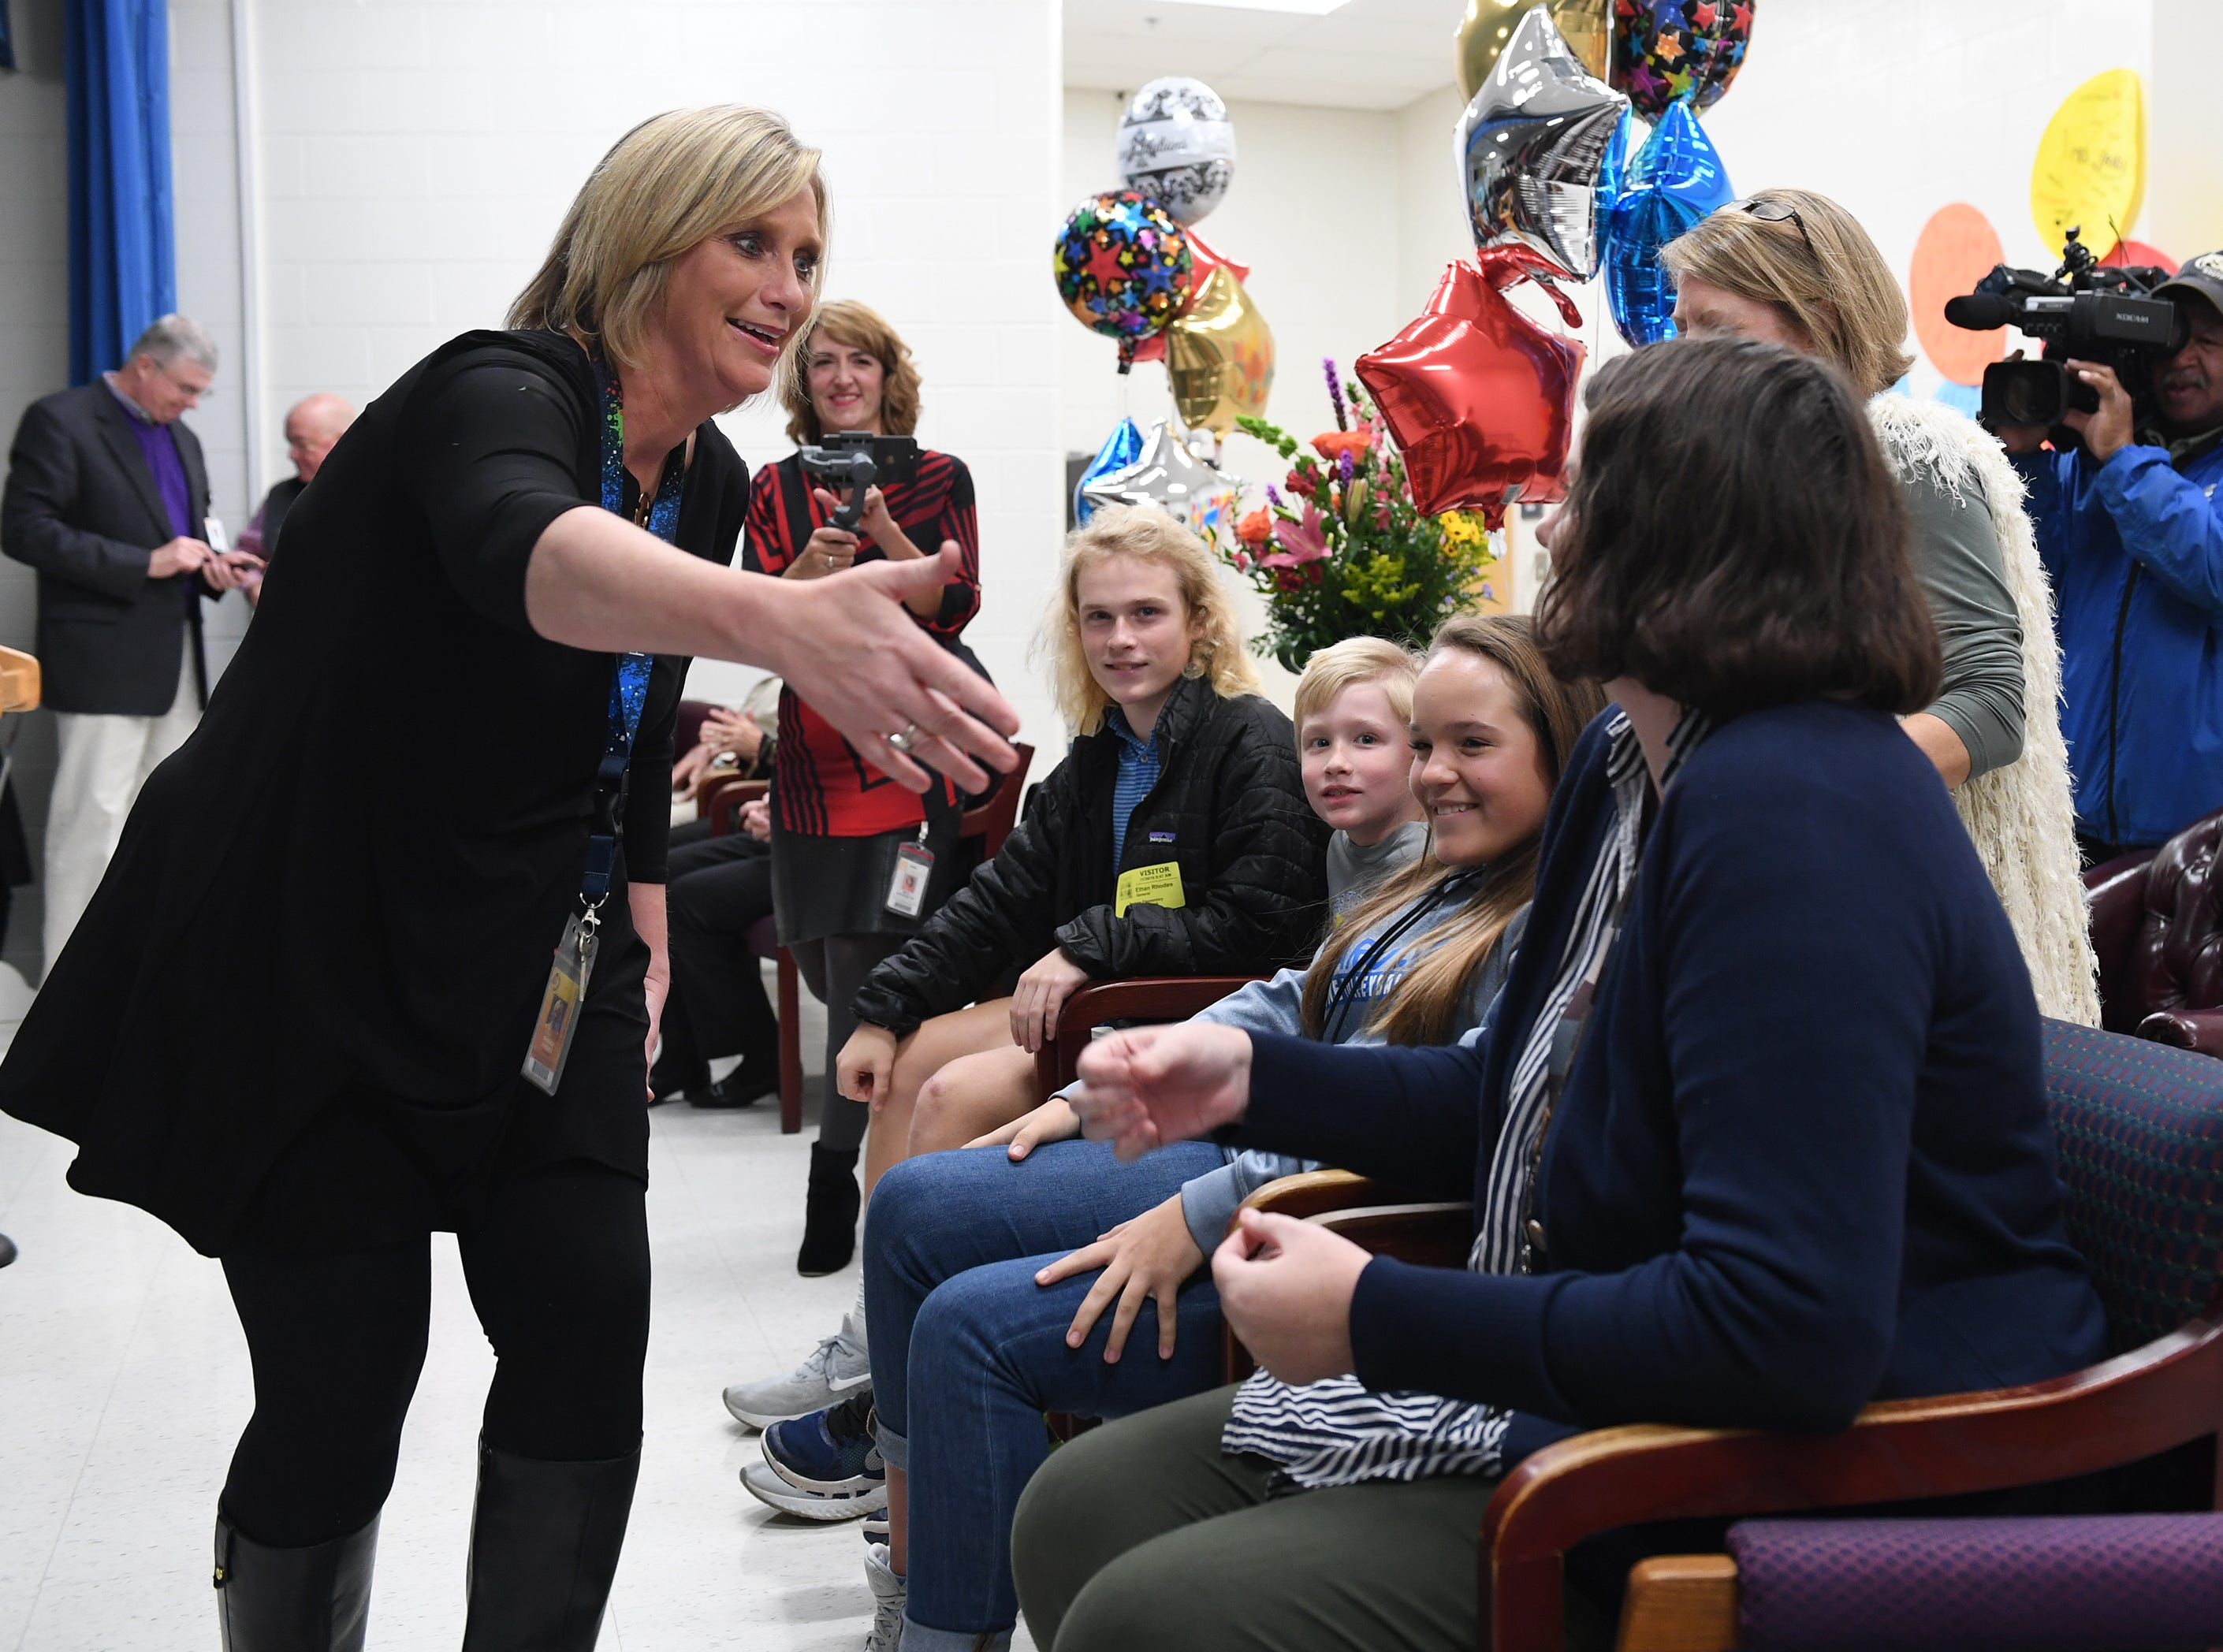 Principal Rhonda Rhodes greets her children who were on stage at Taylors Elementary School as a surprise when Rhodes was named the 2019 SC Elementary Principal of the Year Friday, Nov. 30, 2018.